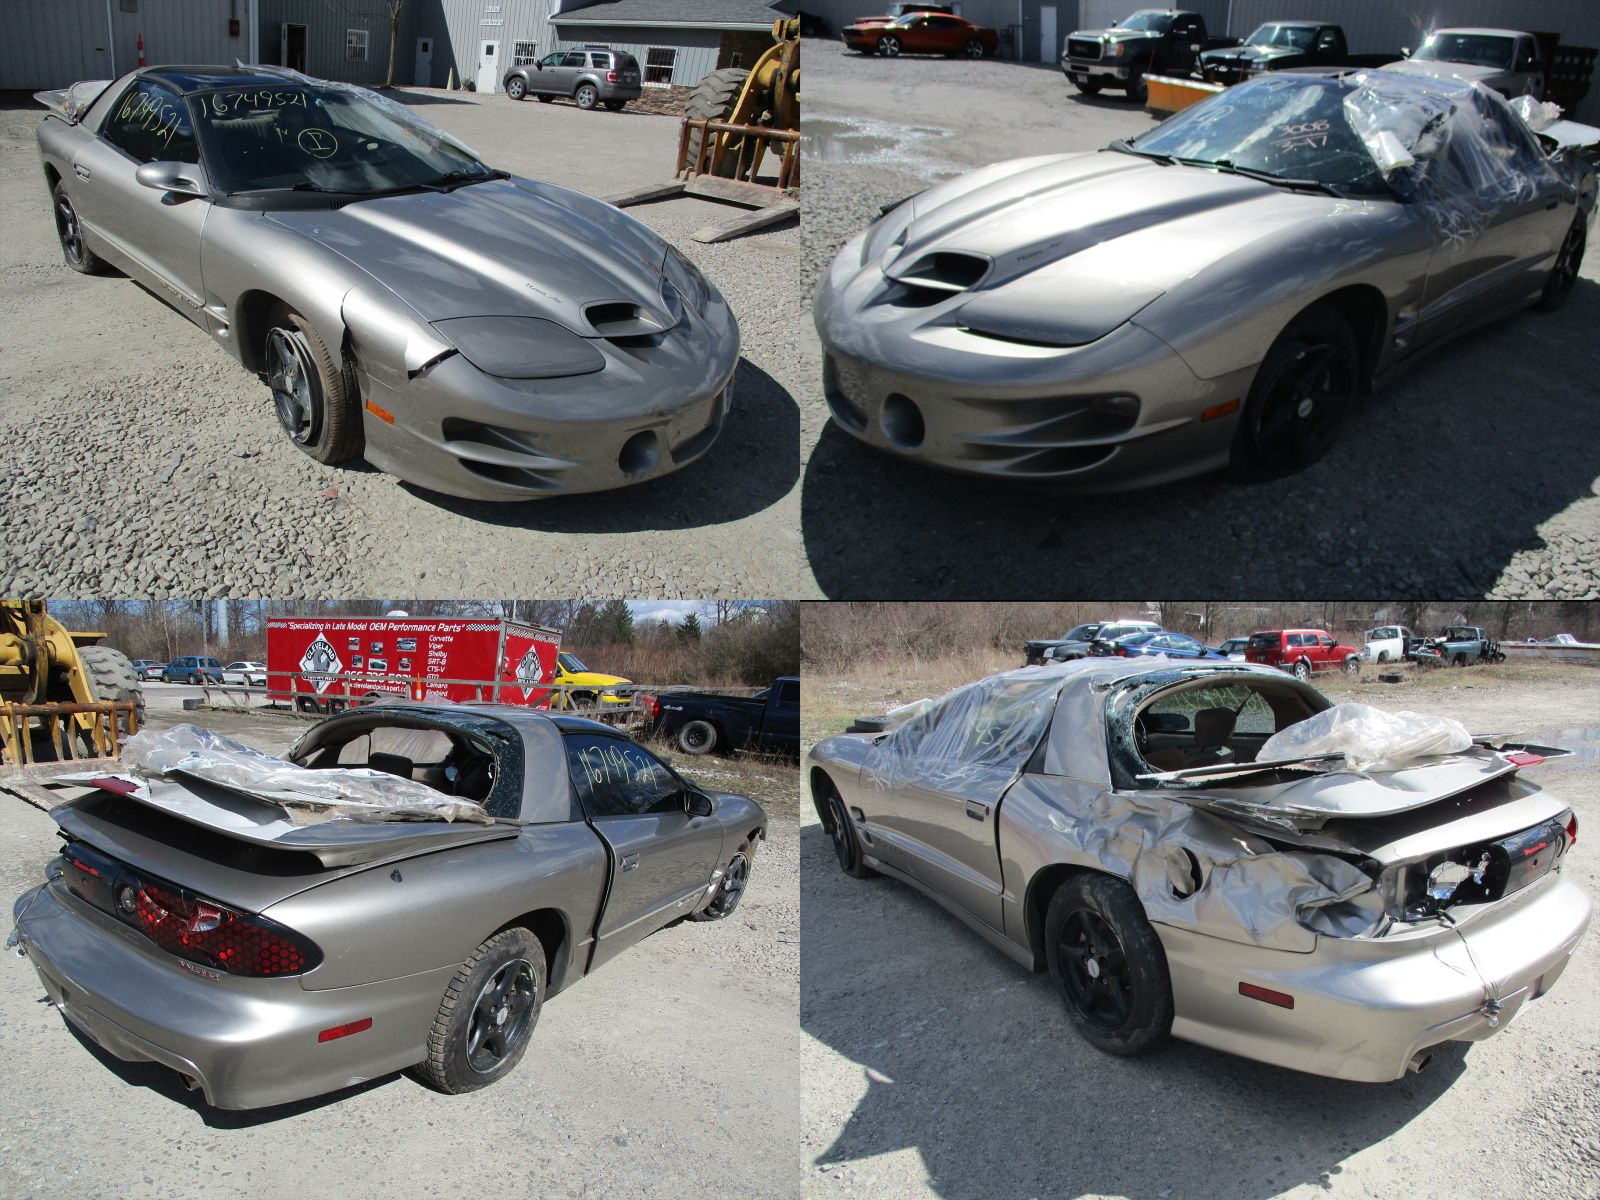 Wrecked Cars For Sale >> 2002 Pewter Pontiac Firebird Trans AM Ram Air WS6 - Cleveland Power & Performance